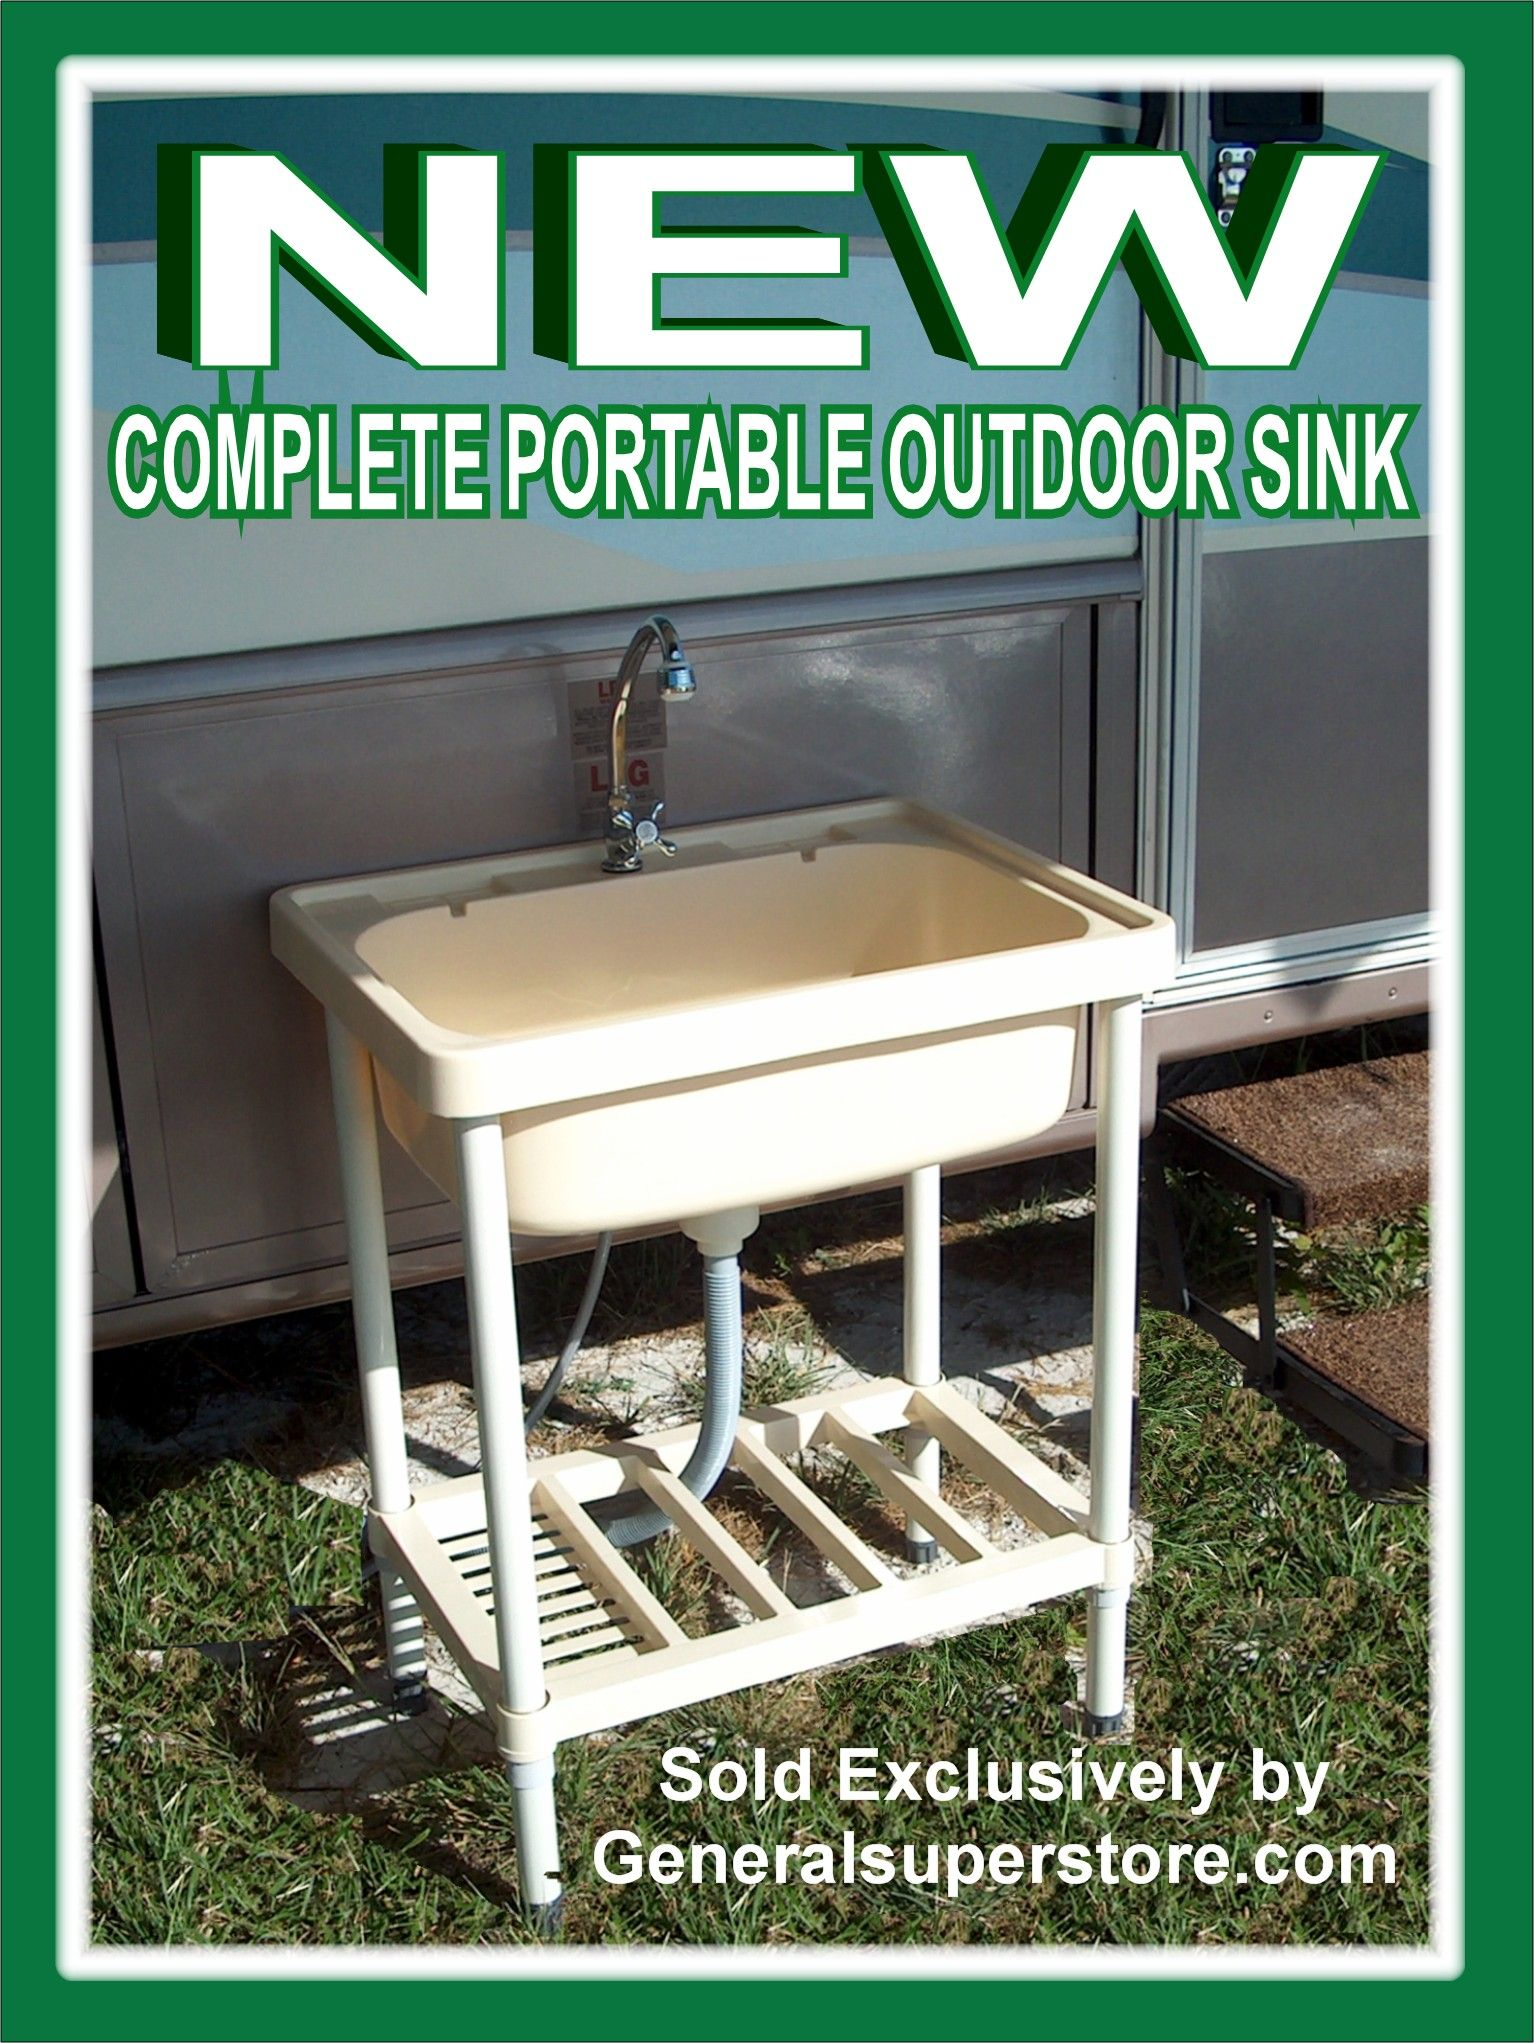 full-size portable outdoor sink needs only a connection to a ...